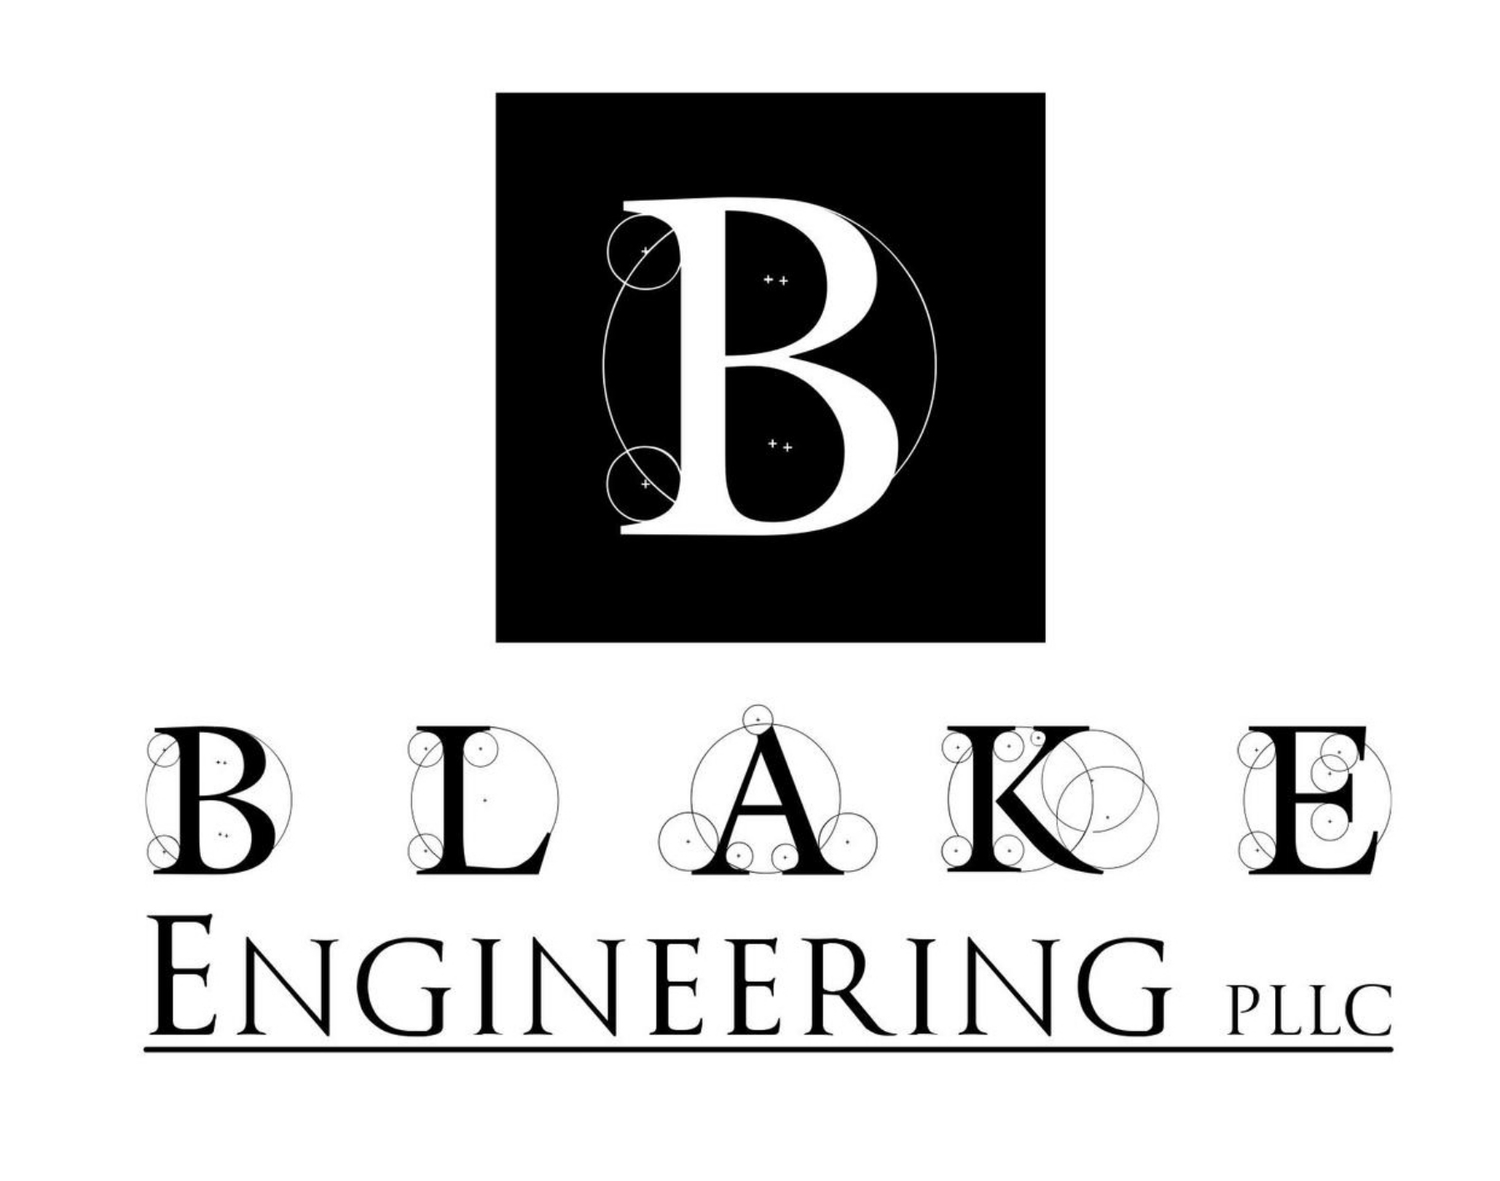 Blake Engineering PLLC